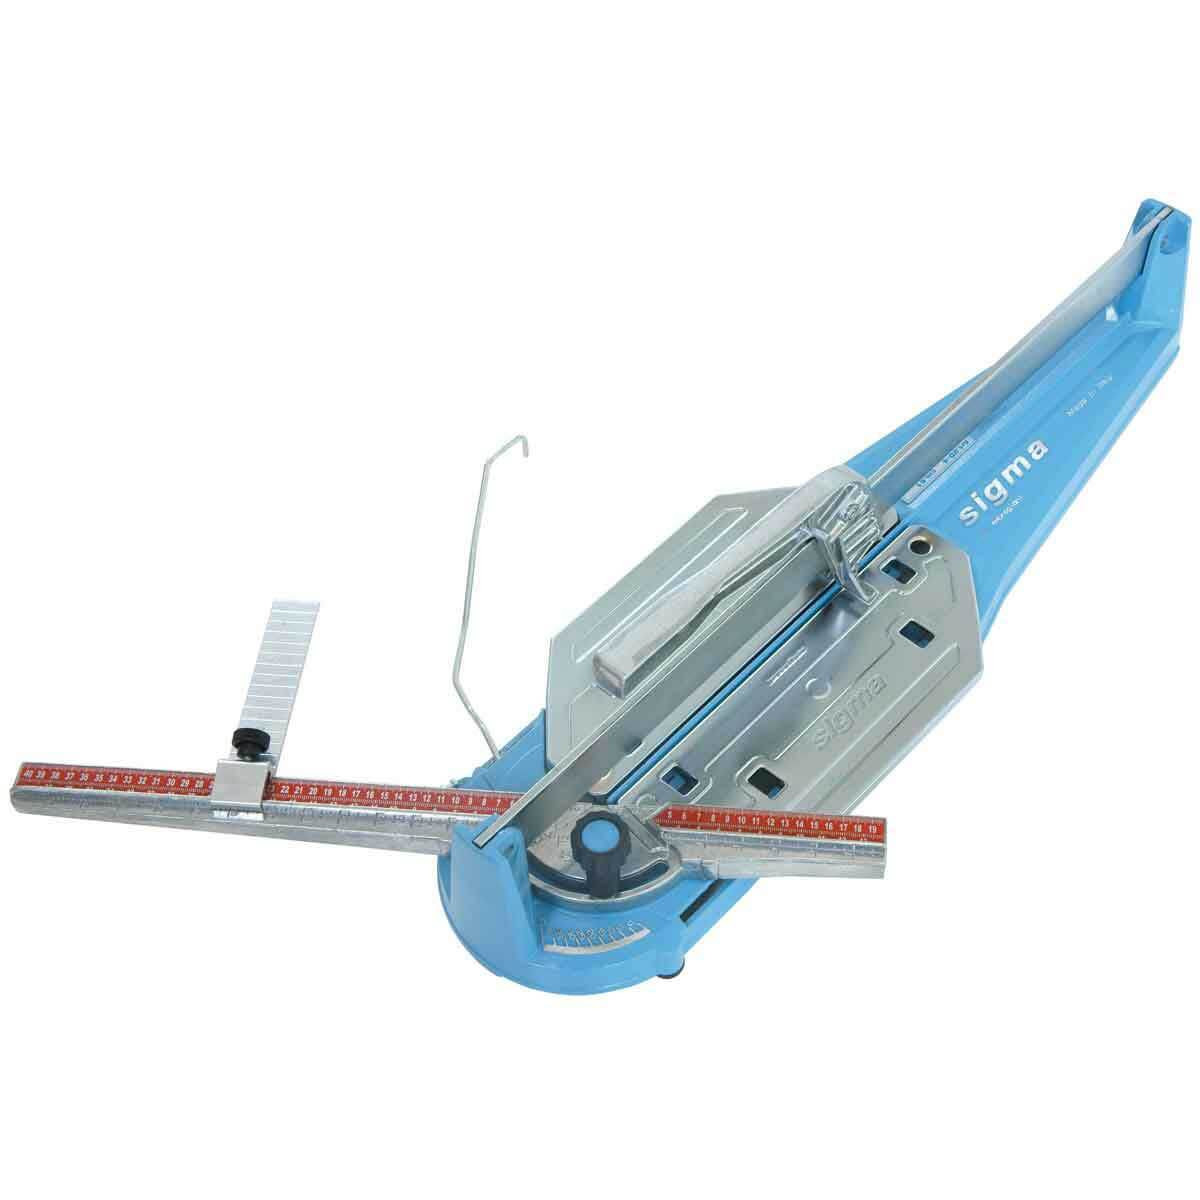 Sigma Tile Cutter Sigma Tile Cutter Parts Best Sigma